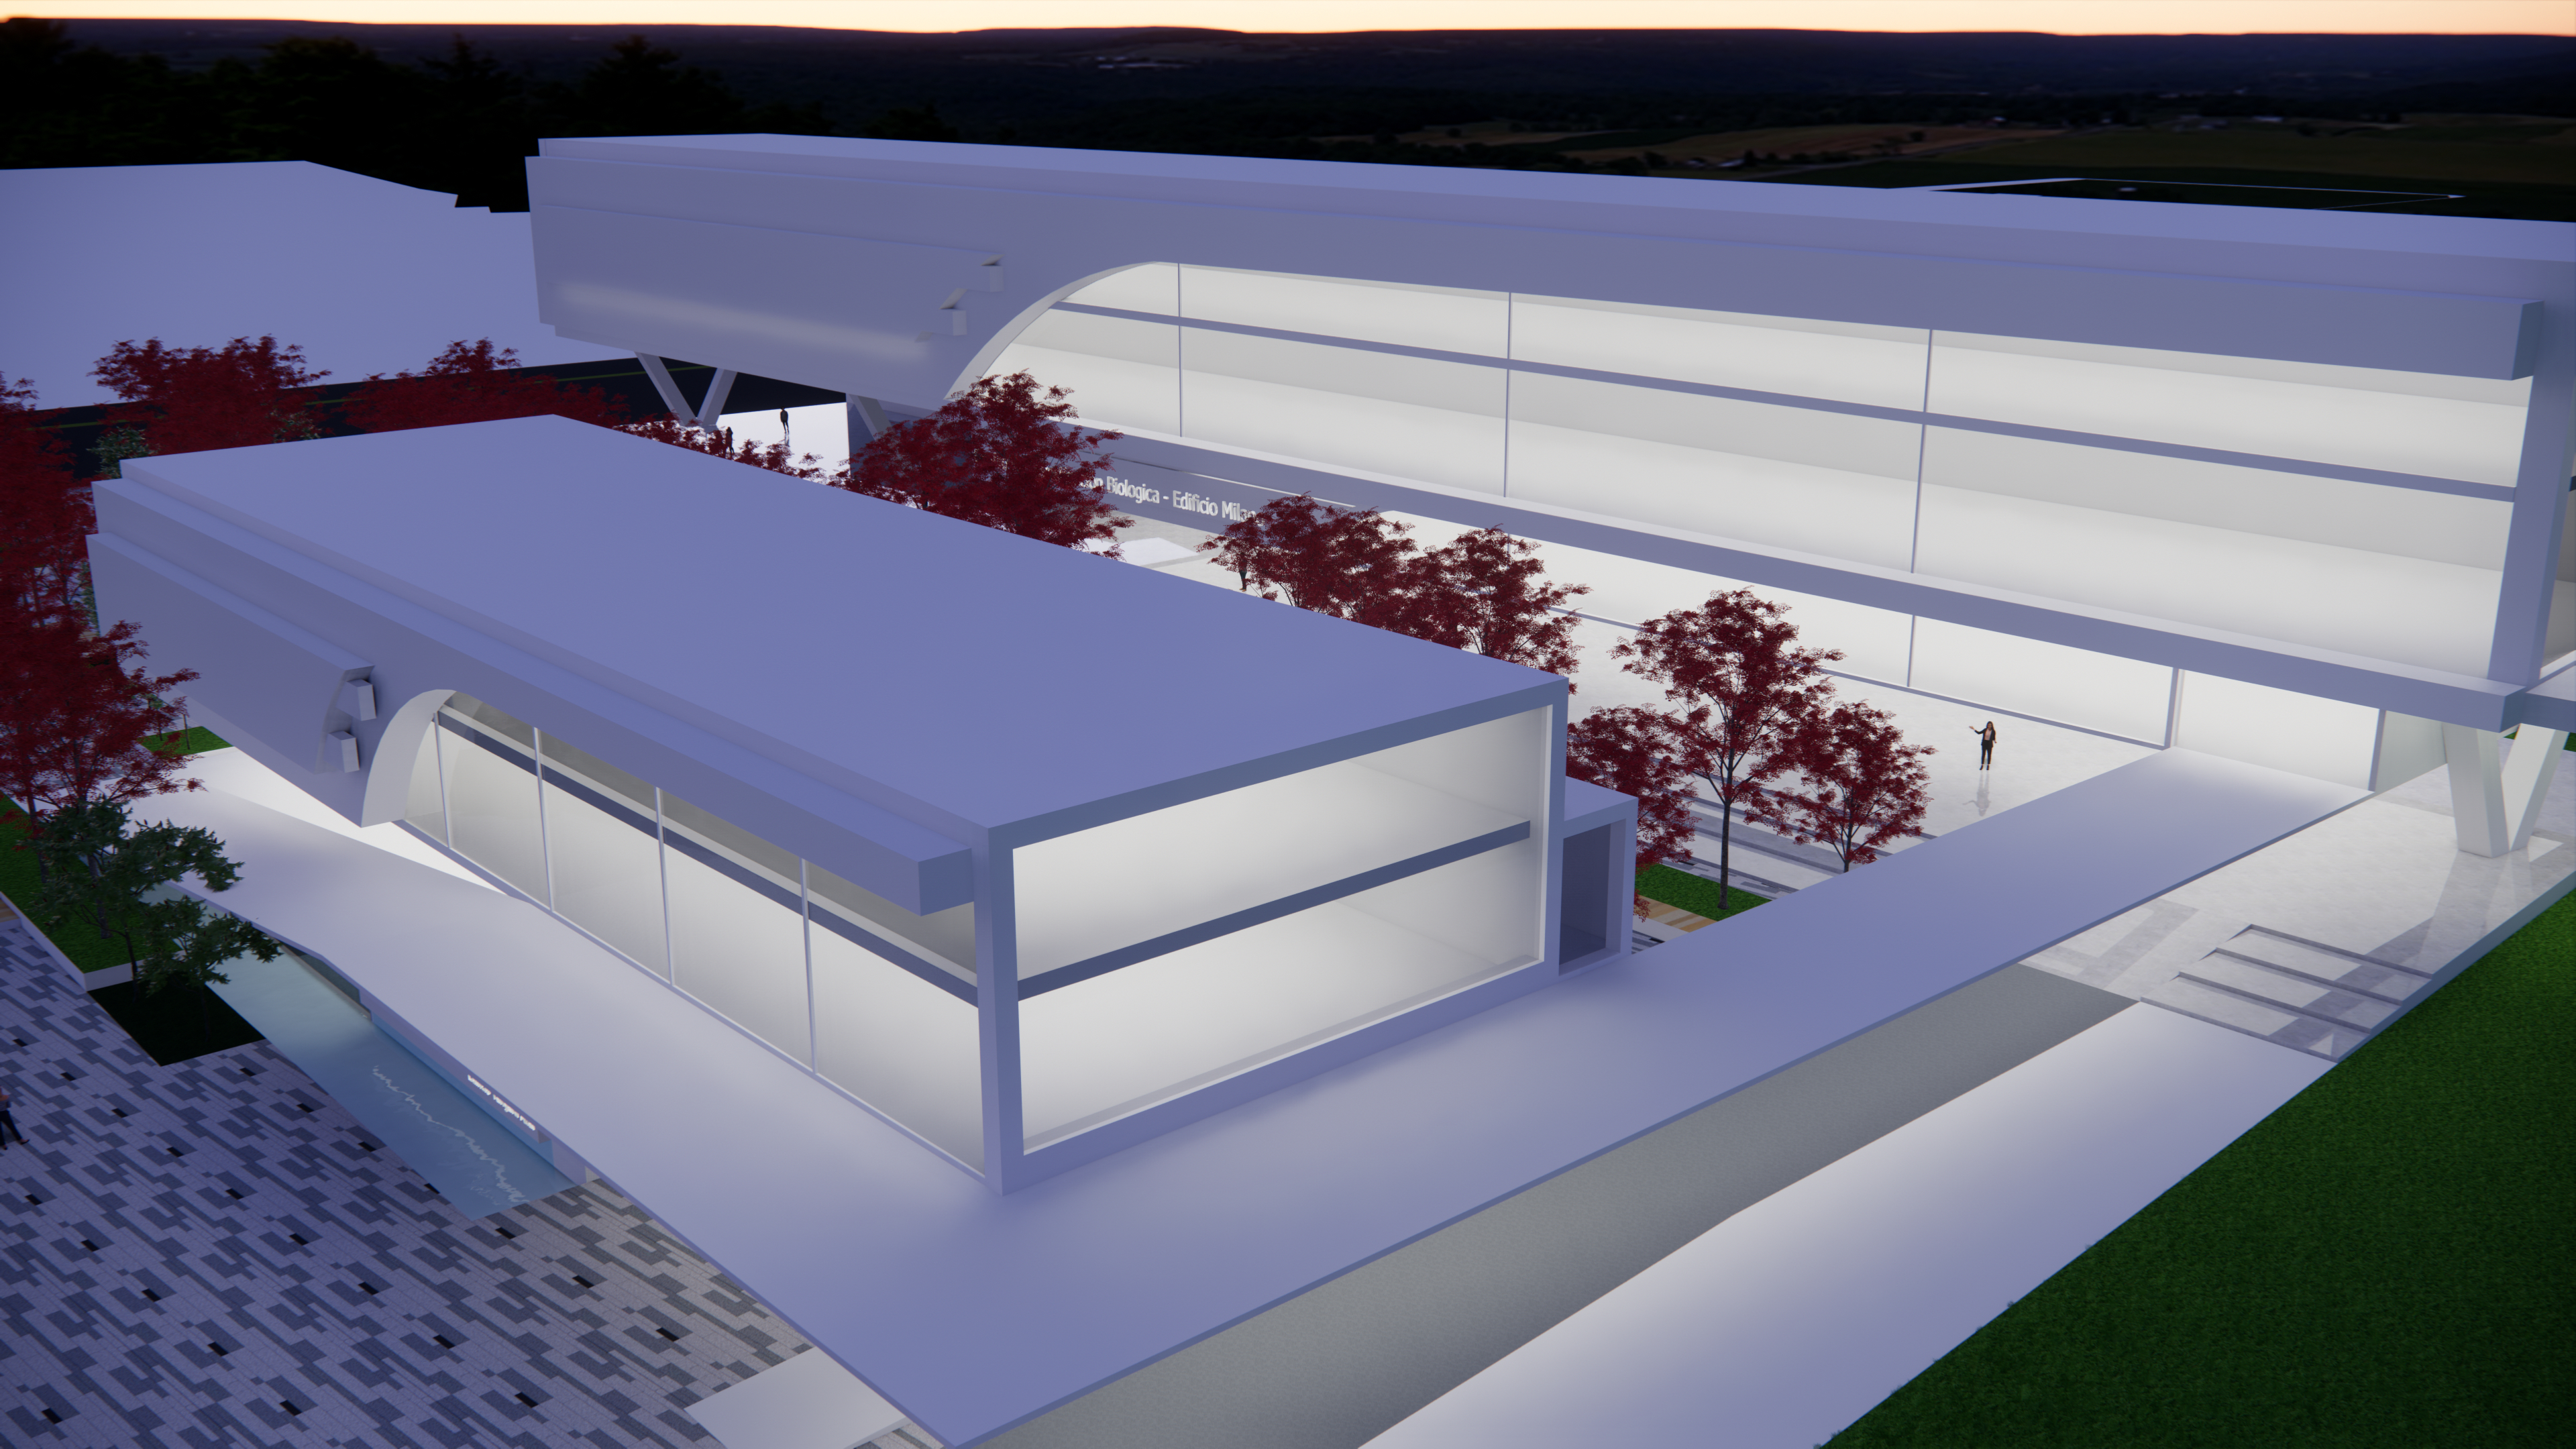 Exterior Volumetry in SketchUp Other image